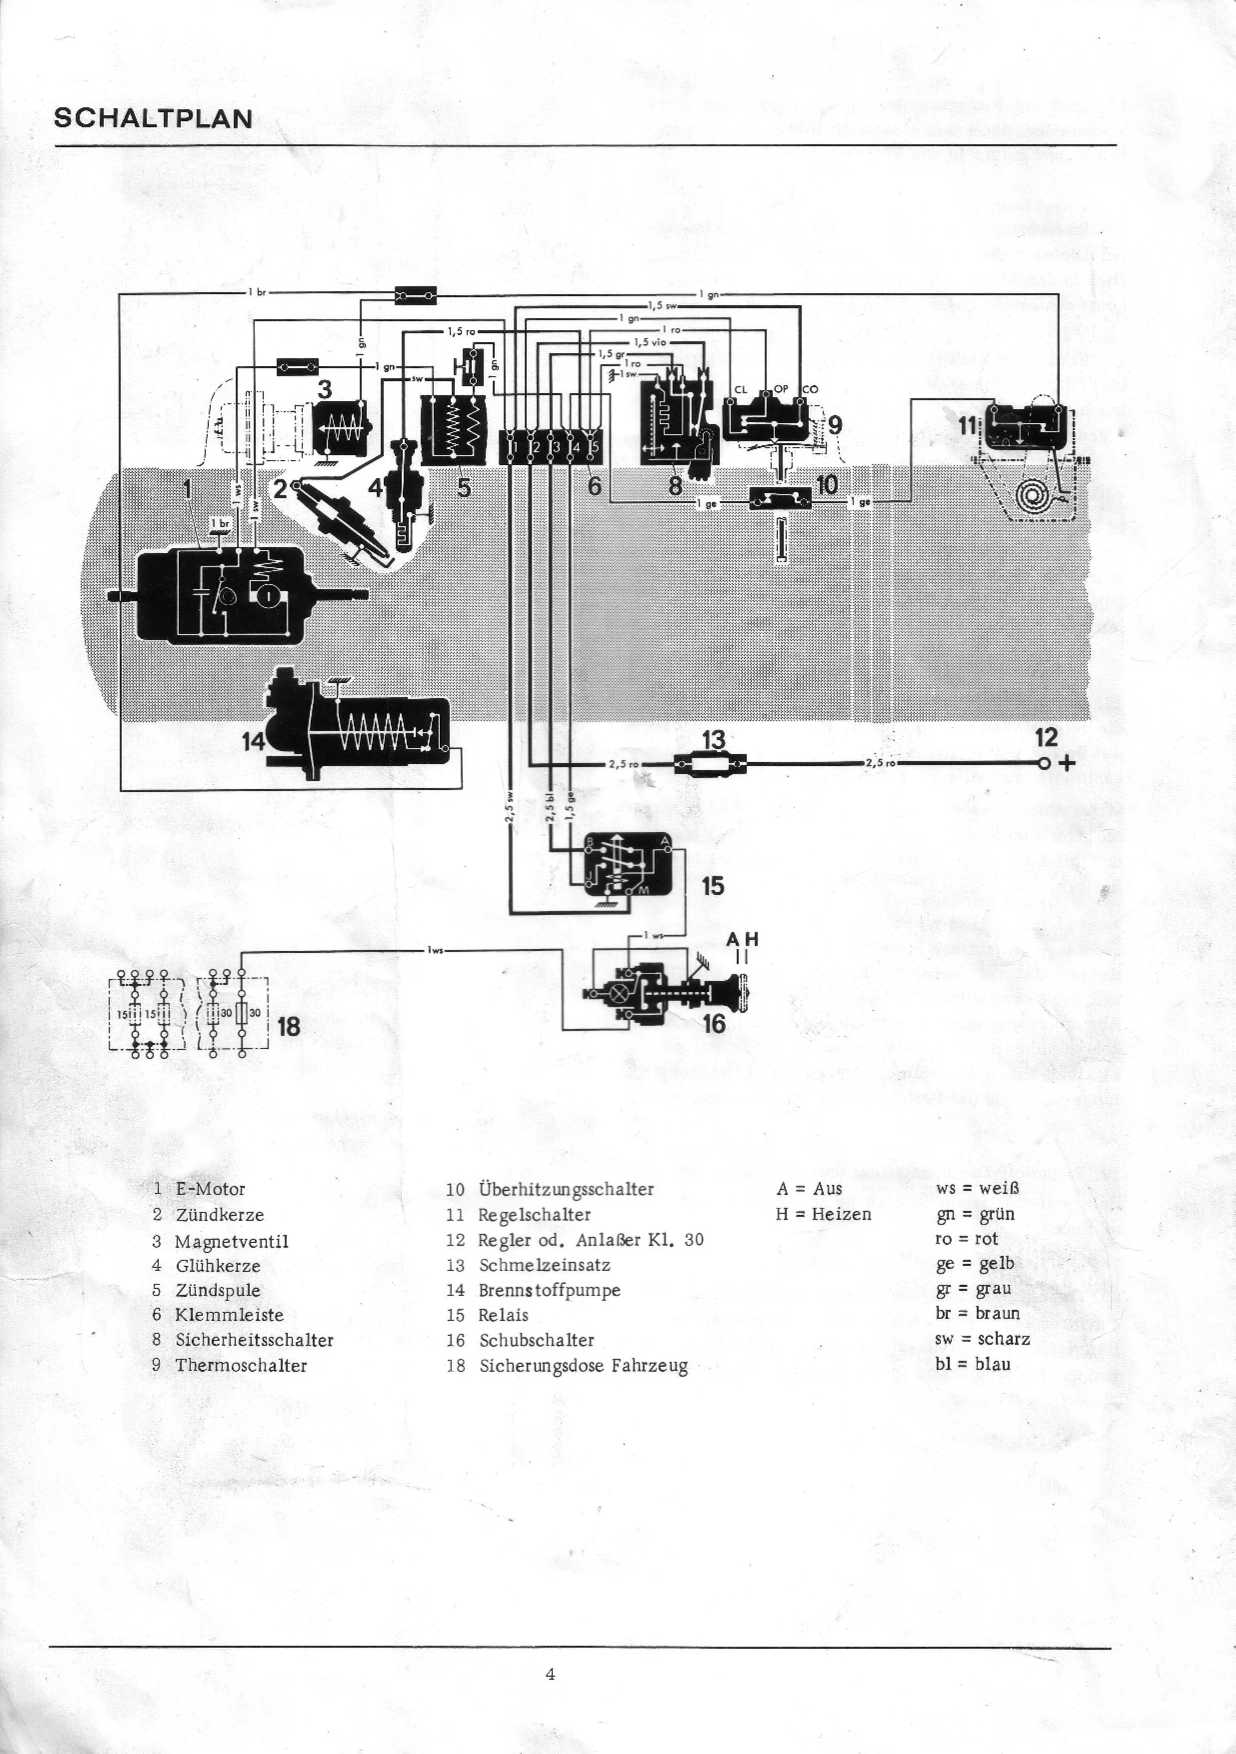 1976 Vw Bus Engine Wiring Diagrams Diagram Transporter Free Parts On Crossbar